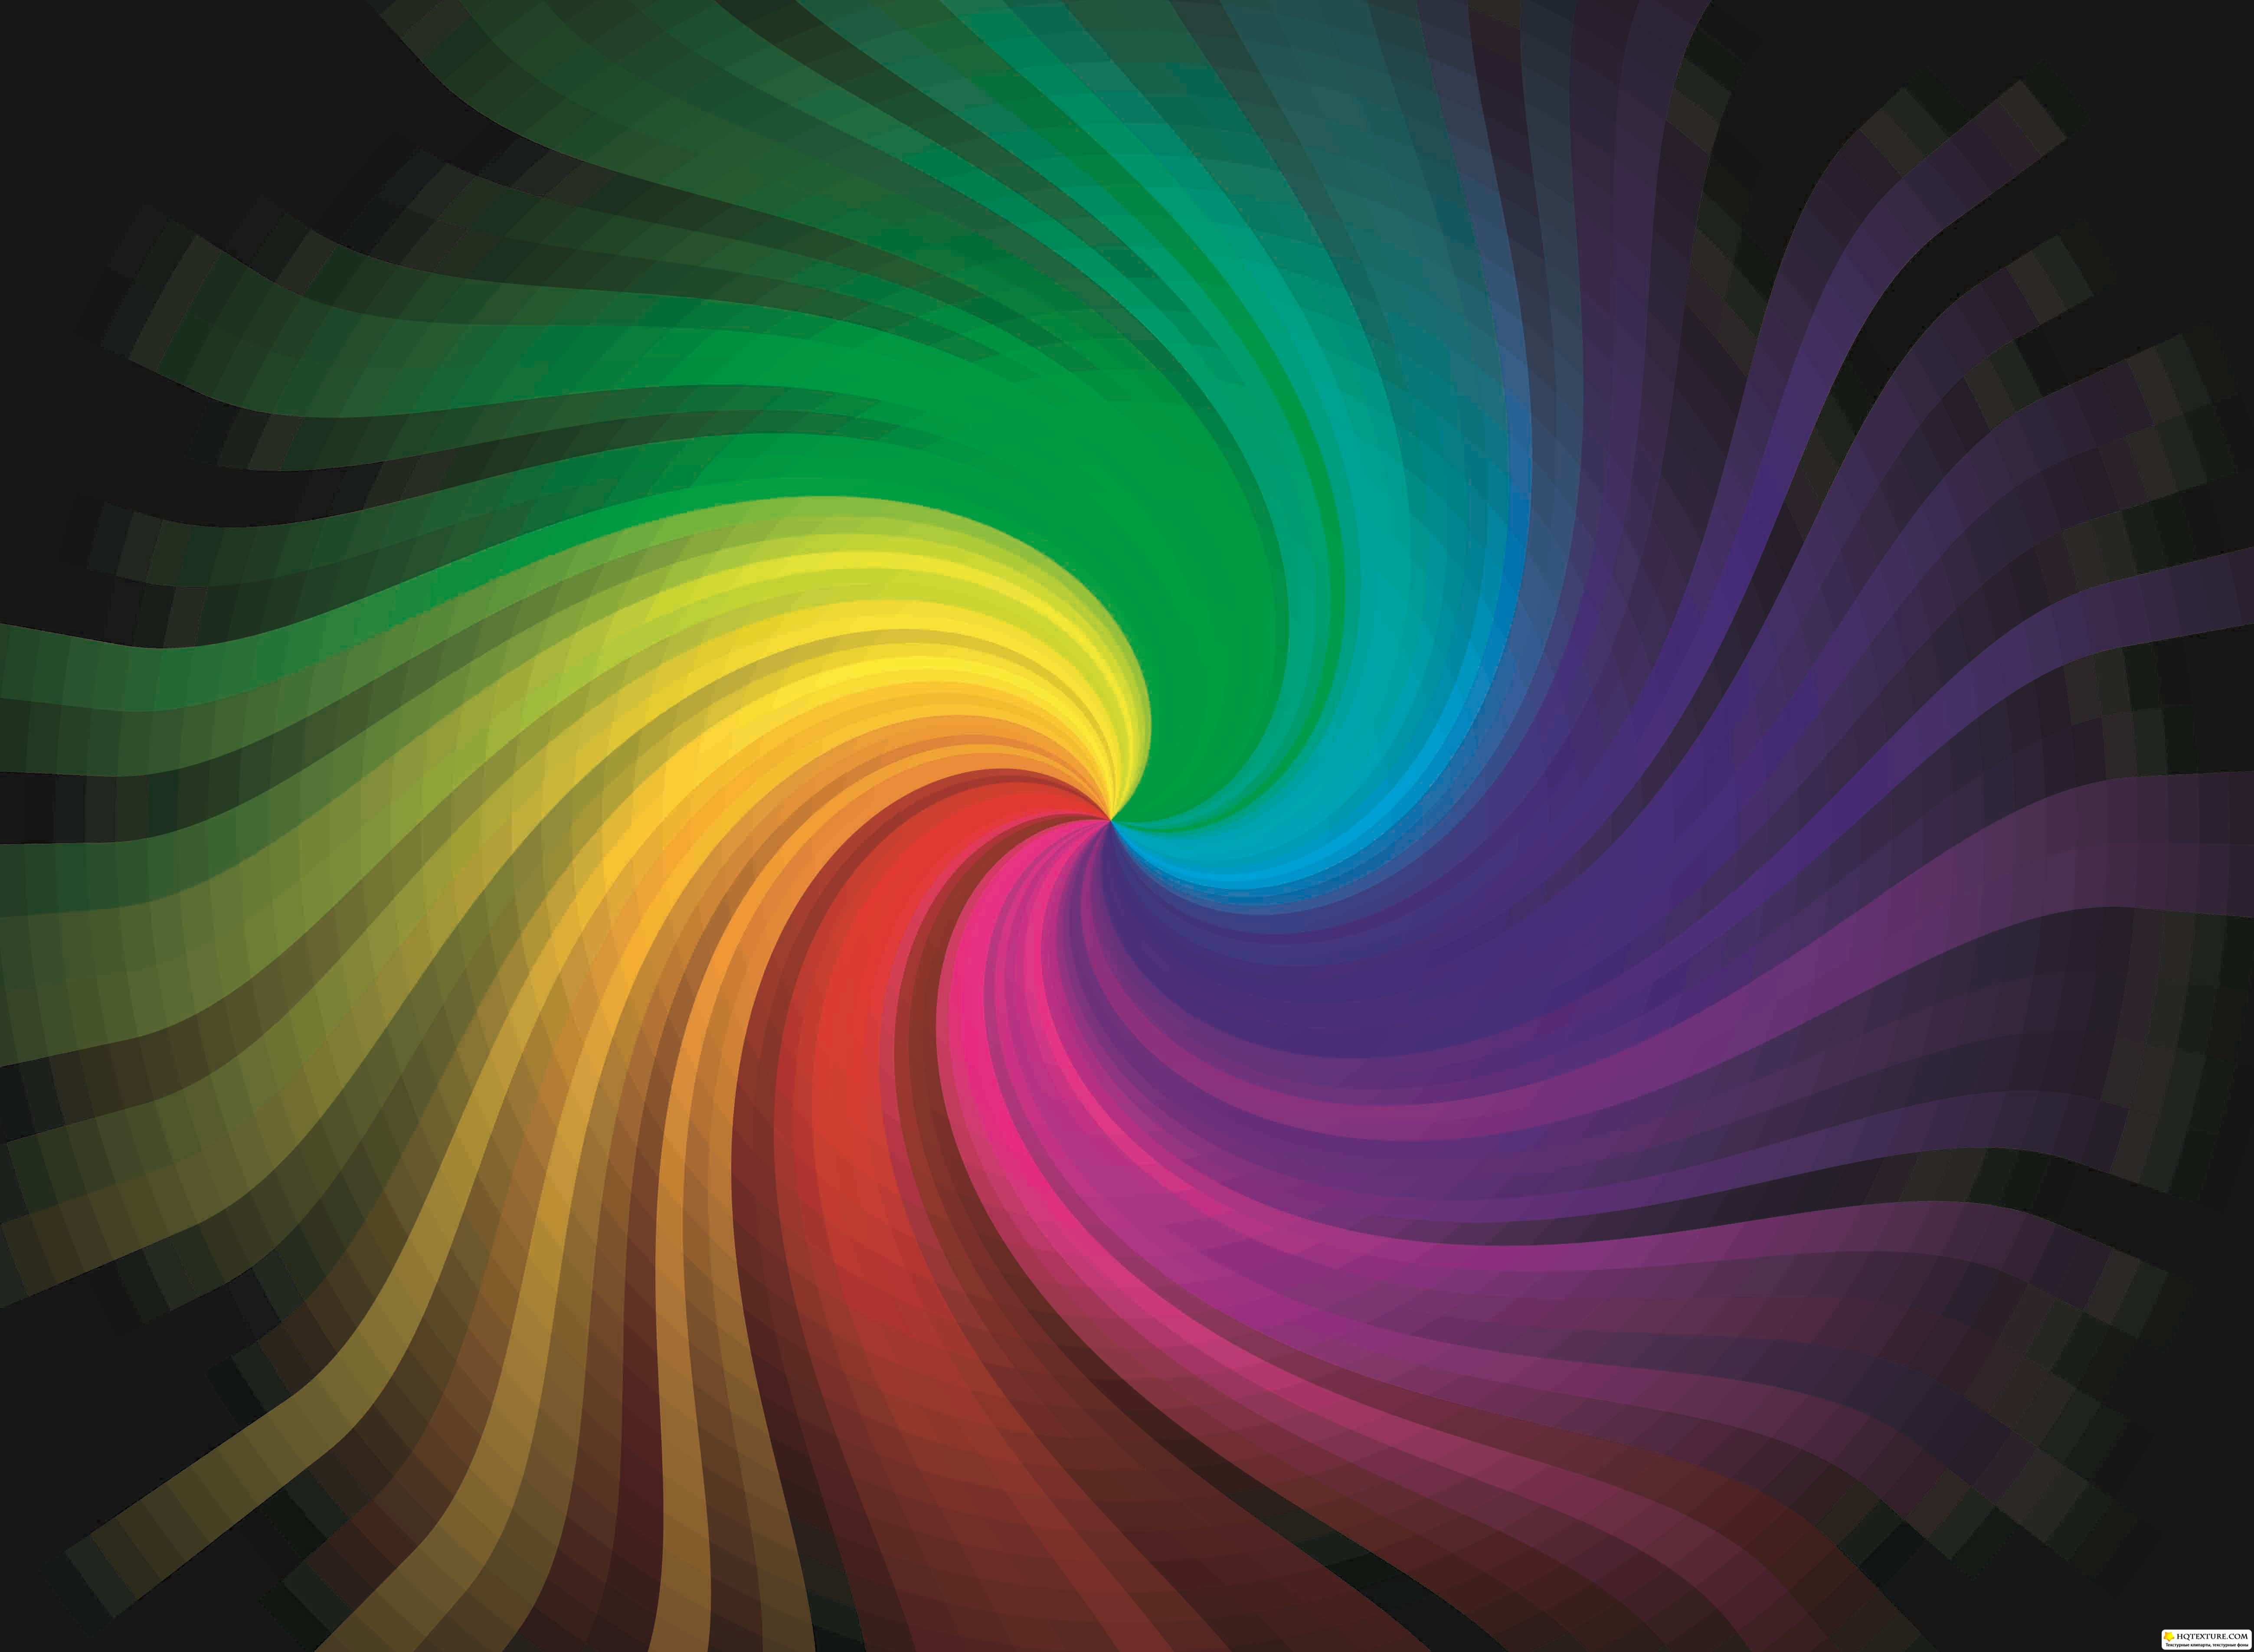 Colors Of The Rainbow http://hqtexture.com/vektory/other/962-colors_of_the_rainbow_147-mb.html